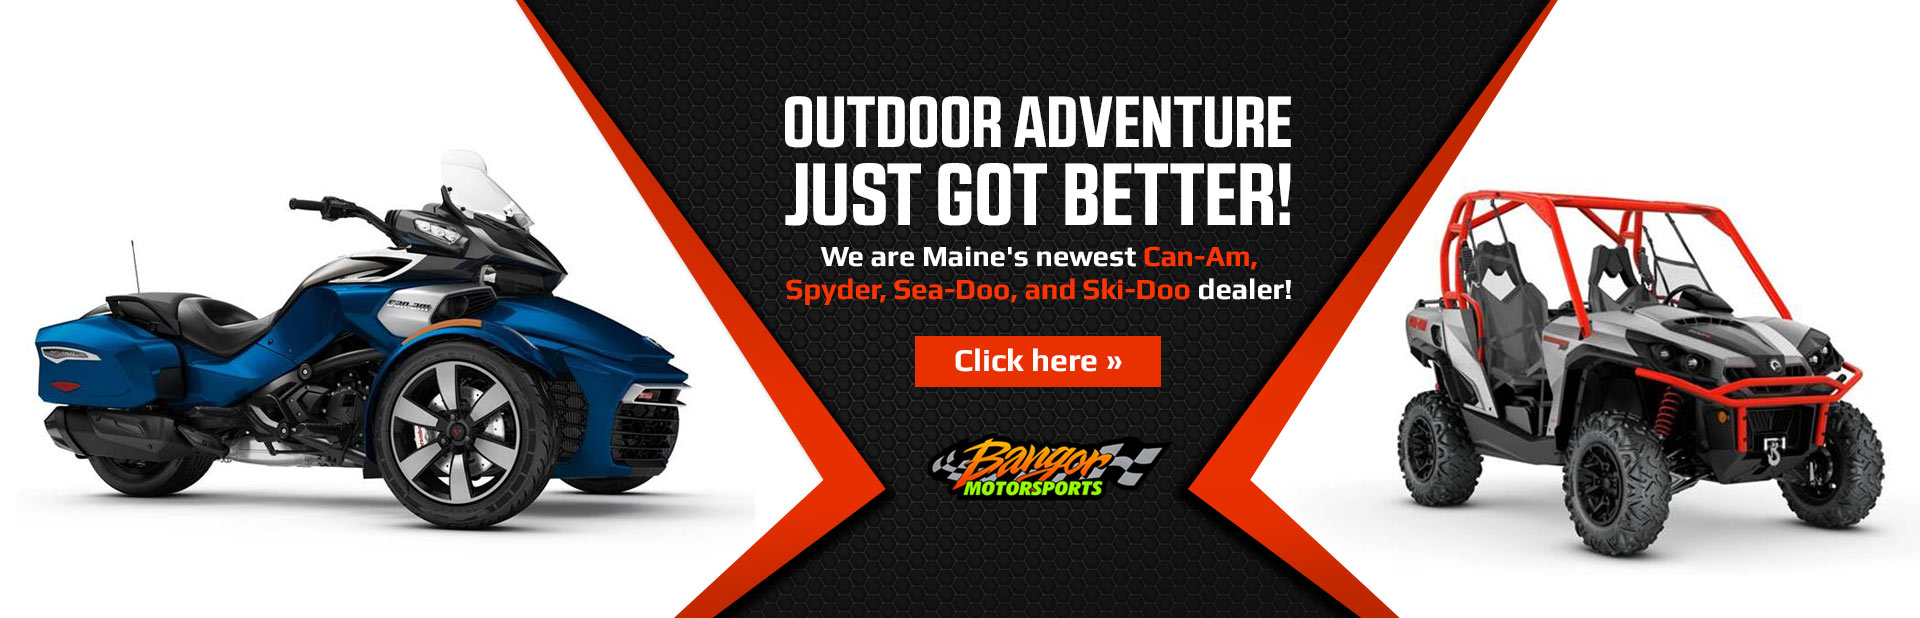 Outdoor adventure just got better! We are Maine's newest Can-Am, Spyder, Sea-Doo, and Ski-Doo dealer!